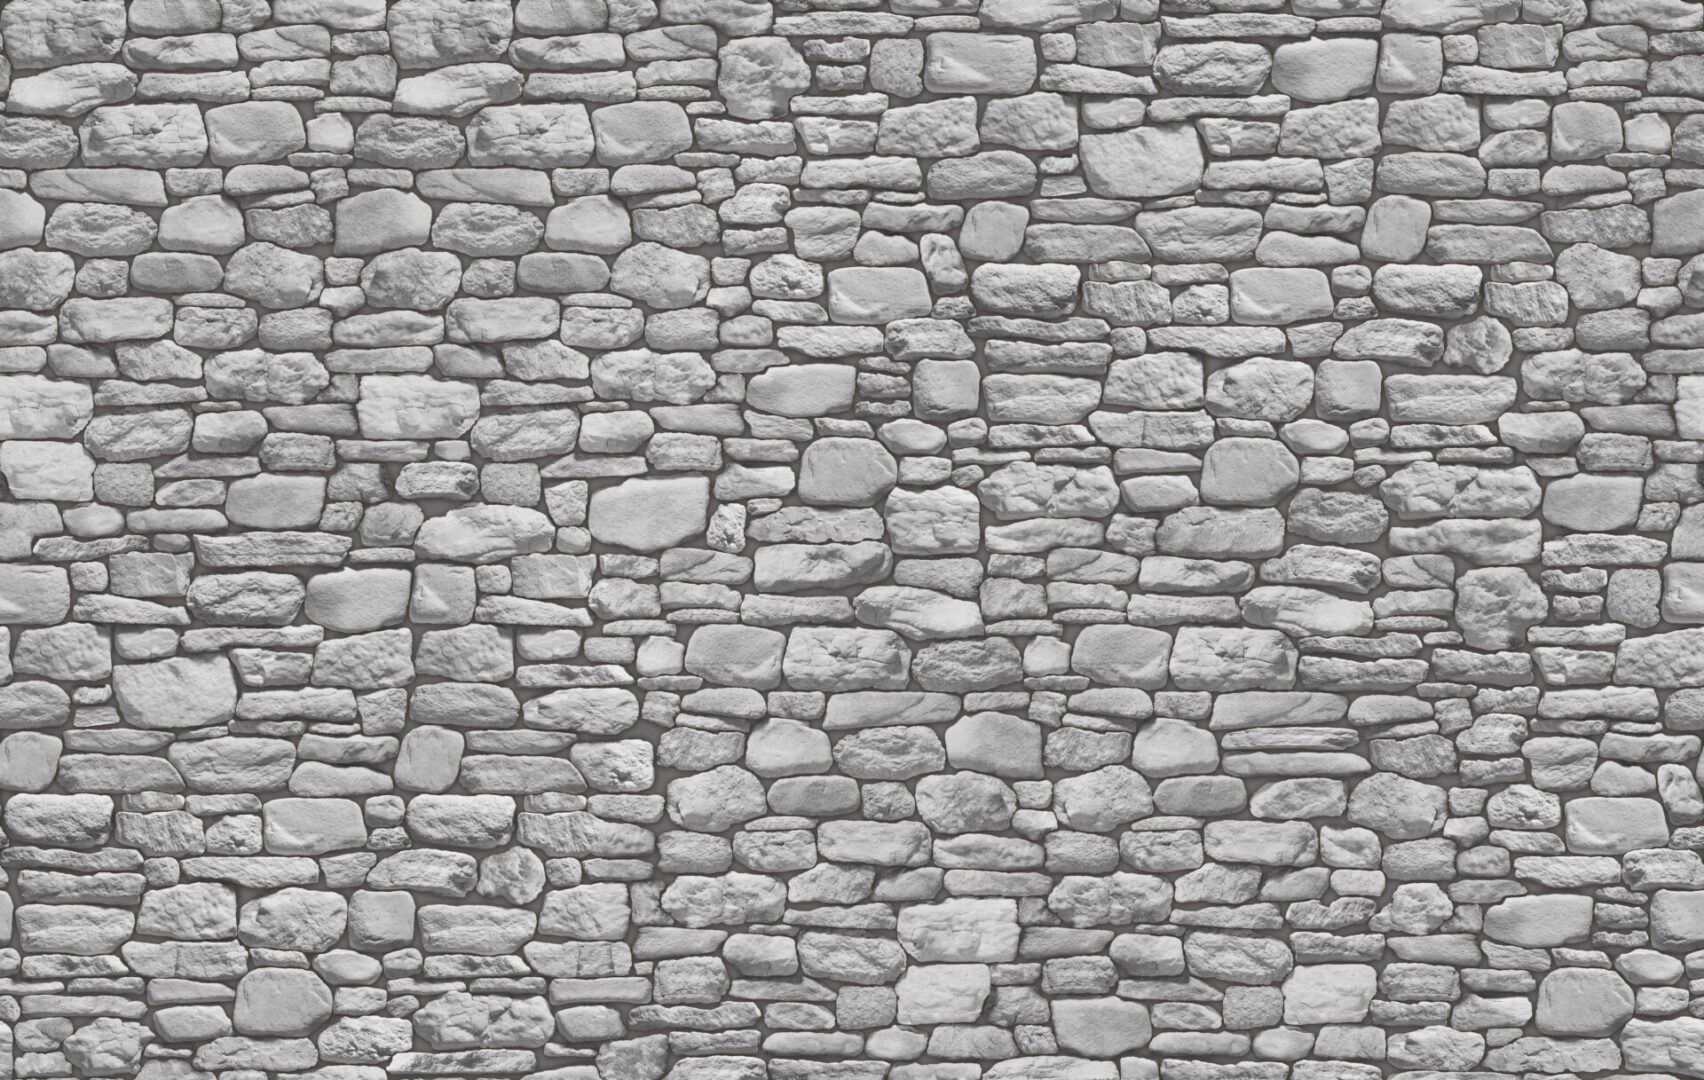 Seamless,Texture,Of,General,Layout,Of,Stone,Masonry,With,Mixed